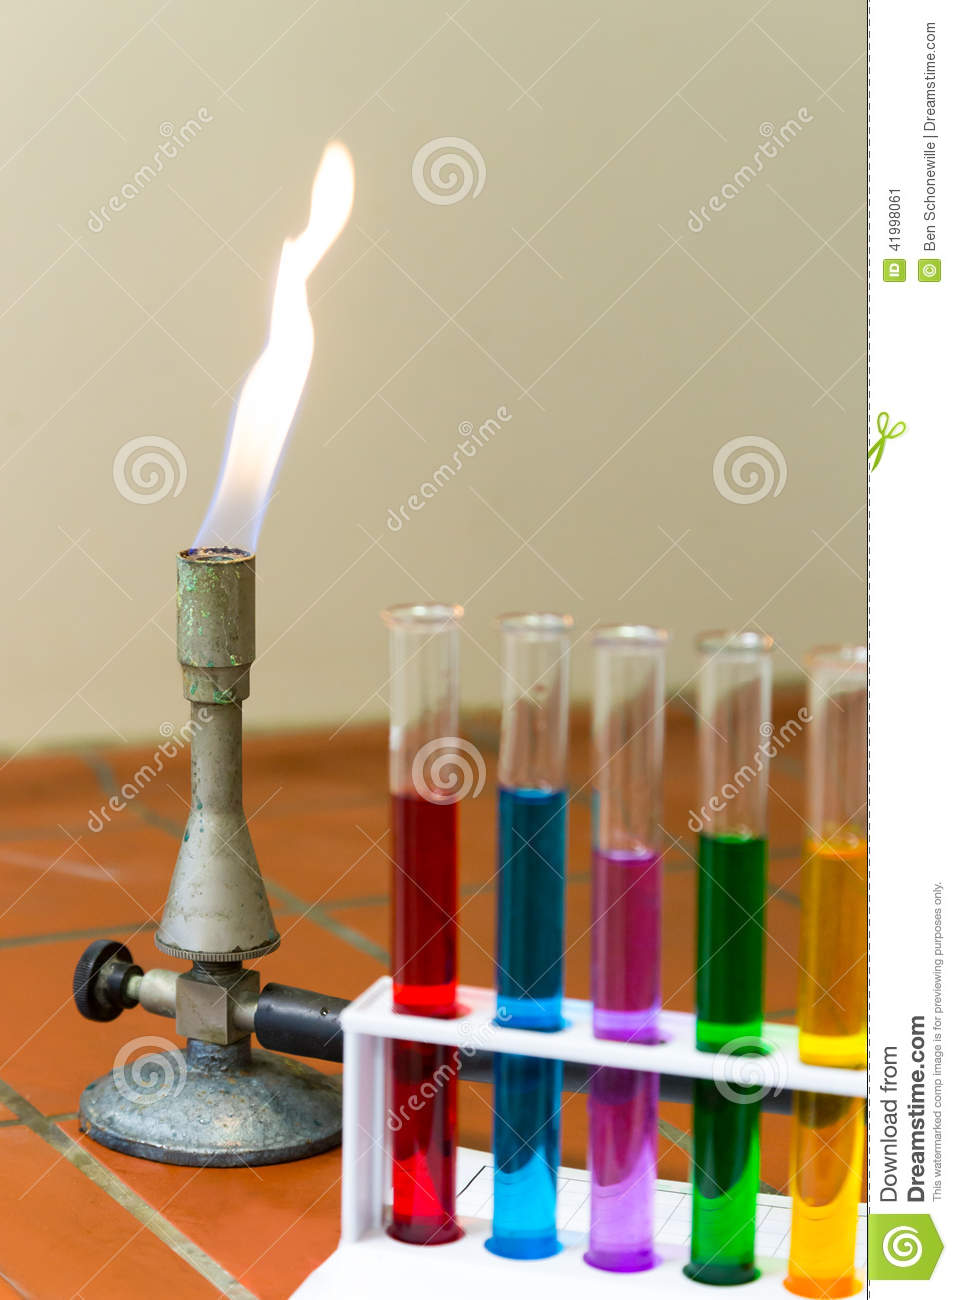 Gas burner with colored test tubes